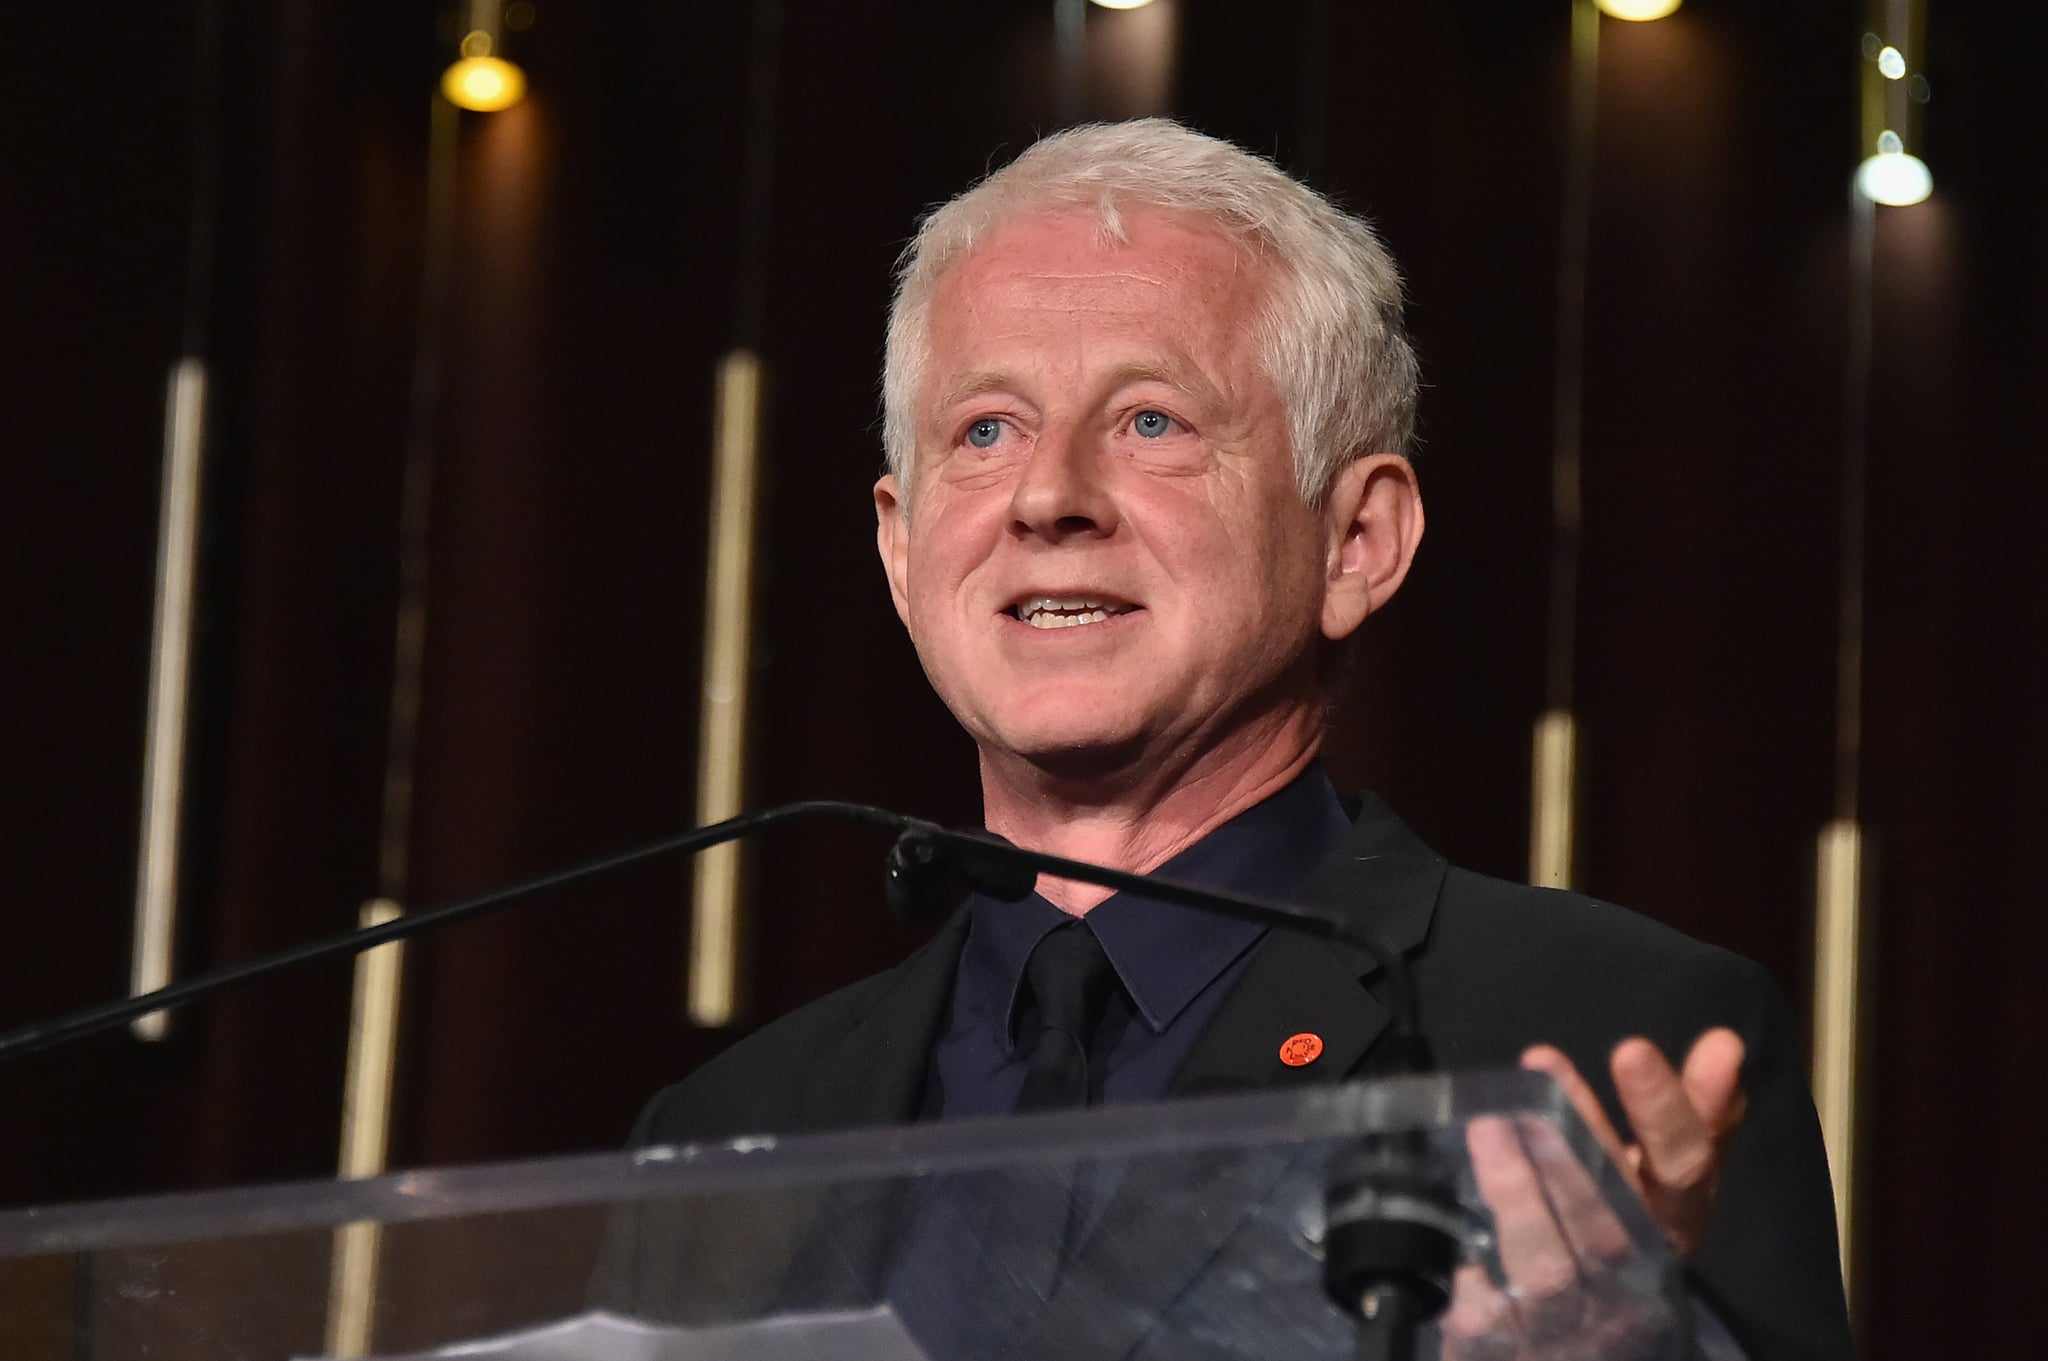 NEW YORK, NY - OCTOBER 25:  Writer, Campaigner and Red Nose Day Co-Founder and Advocate Award Recipient Richard Curtis speaks onstage during the 4th Annual Save the Children Illumination Gala at The Plaza hotel on October 25, 2016 in New York City.  (Photo by Mike Coppola/Getty Images for Save The Children)